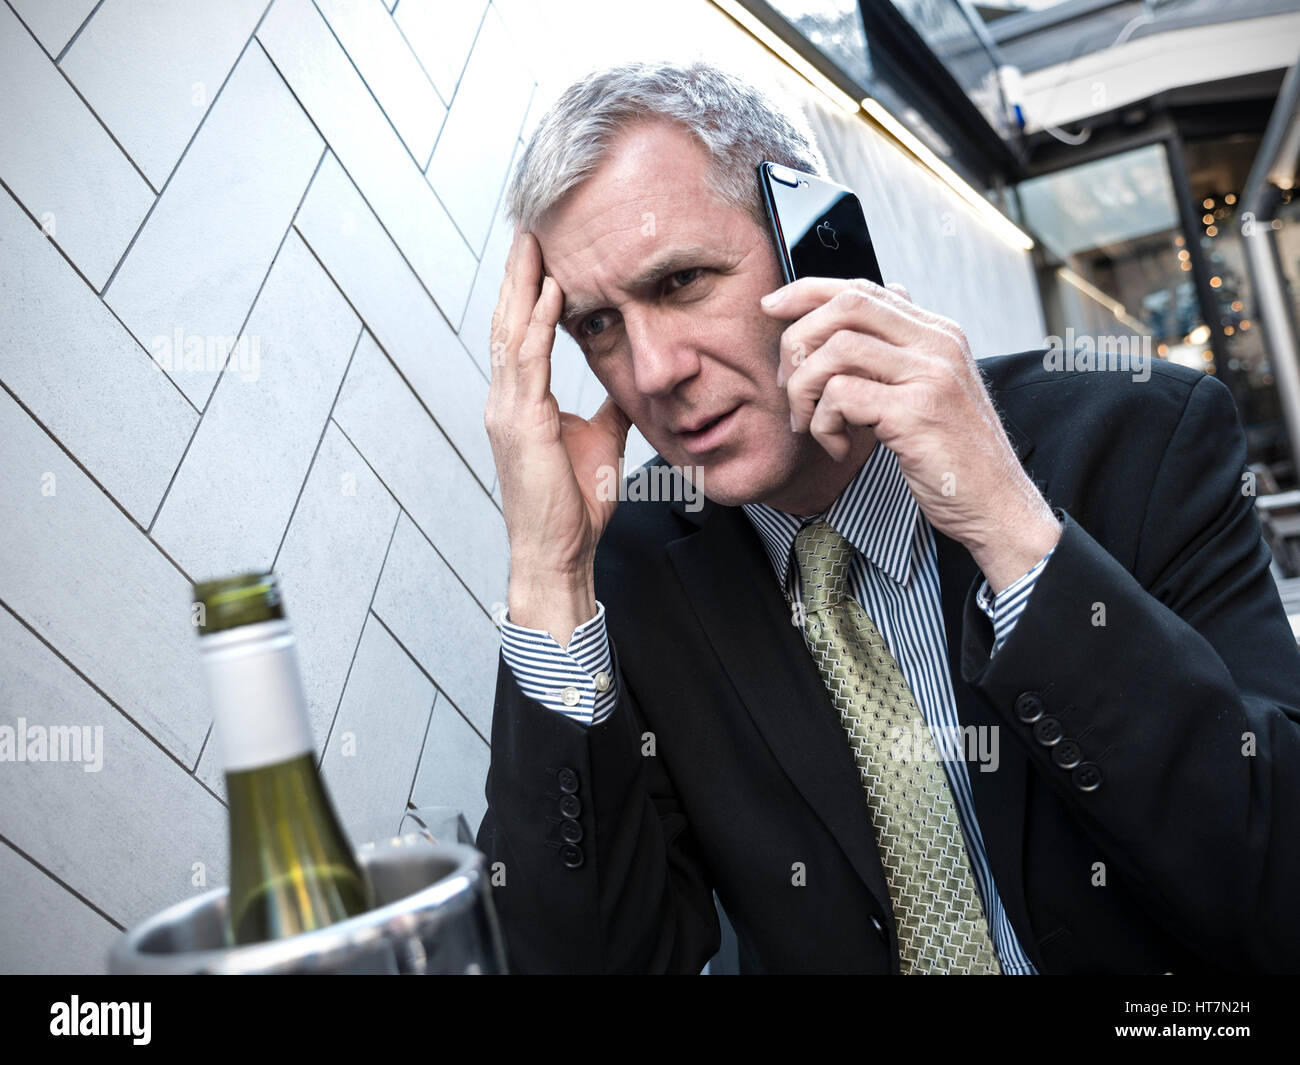 Mature city executive businessman, stressed and worried on his iPhone 7 plus smartphone at alfresco restaurant table - Stock Image